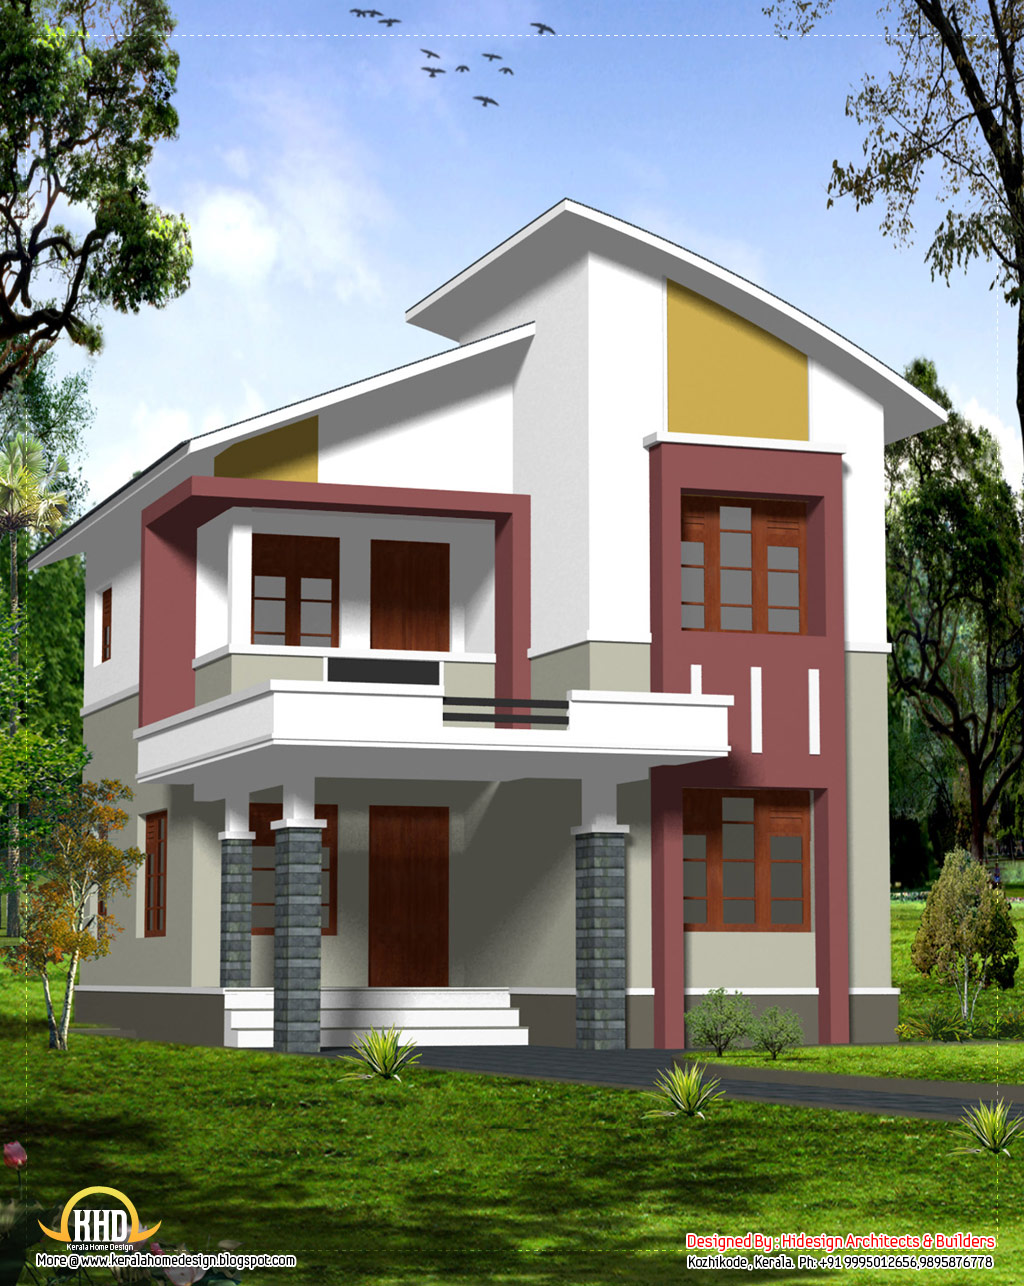 Budget home design 2140 sq ft kerala home design and for House plans architecture